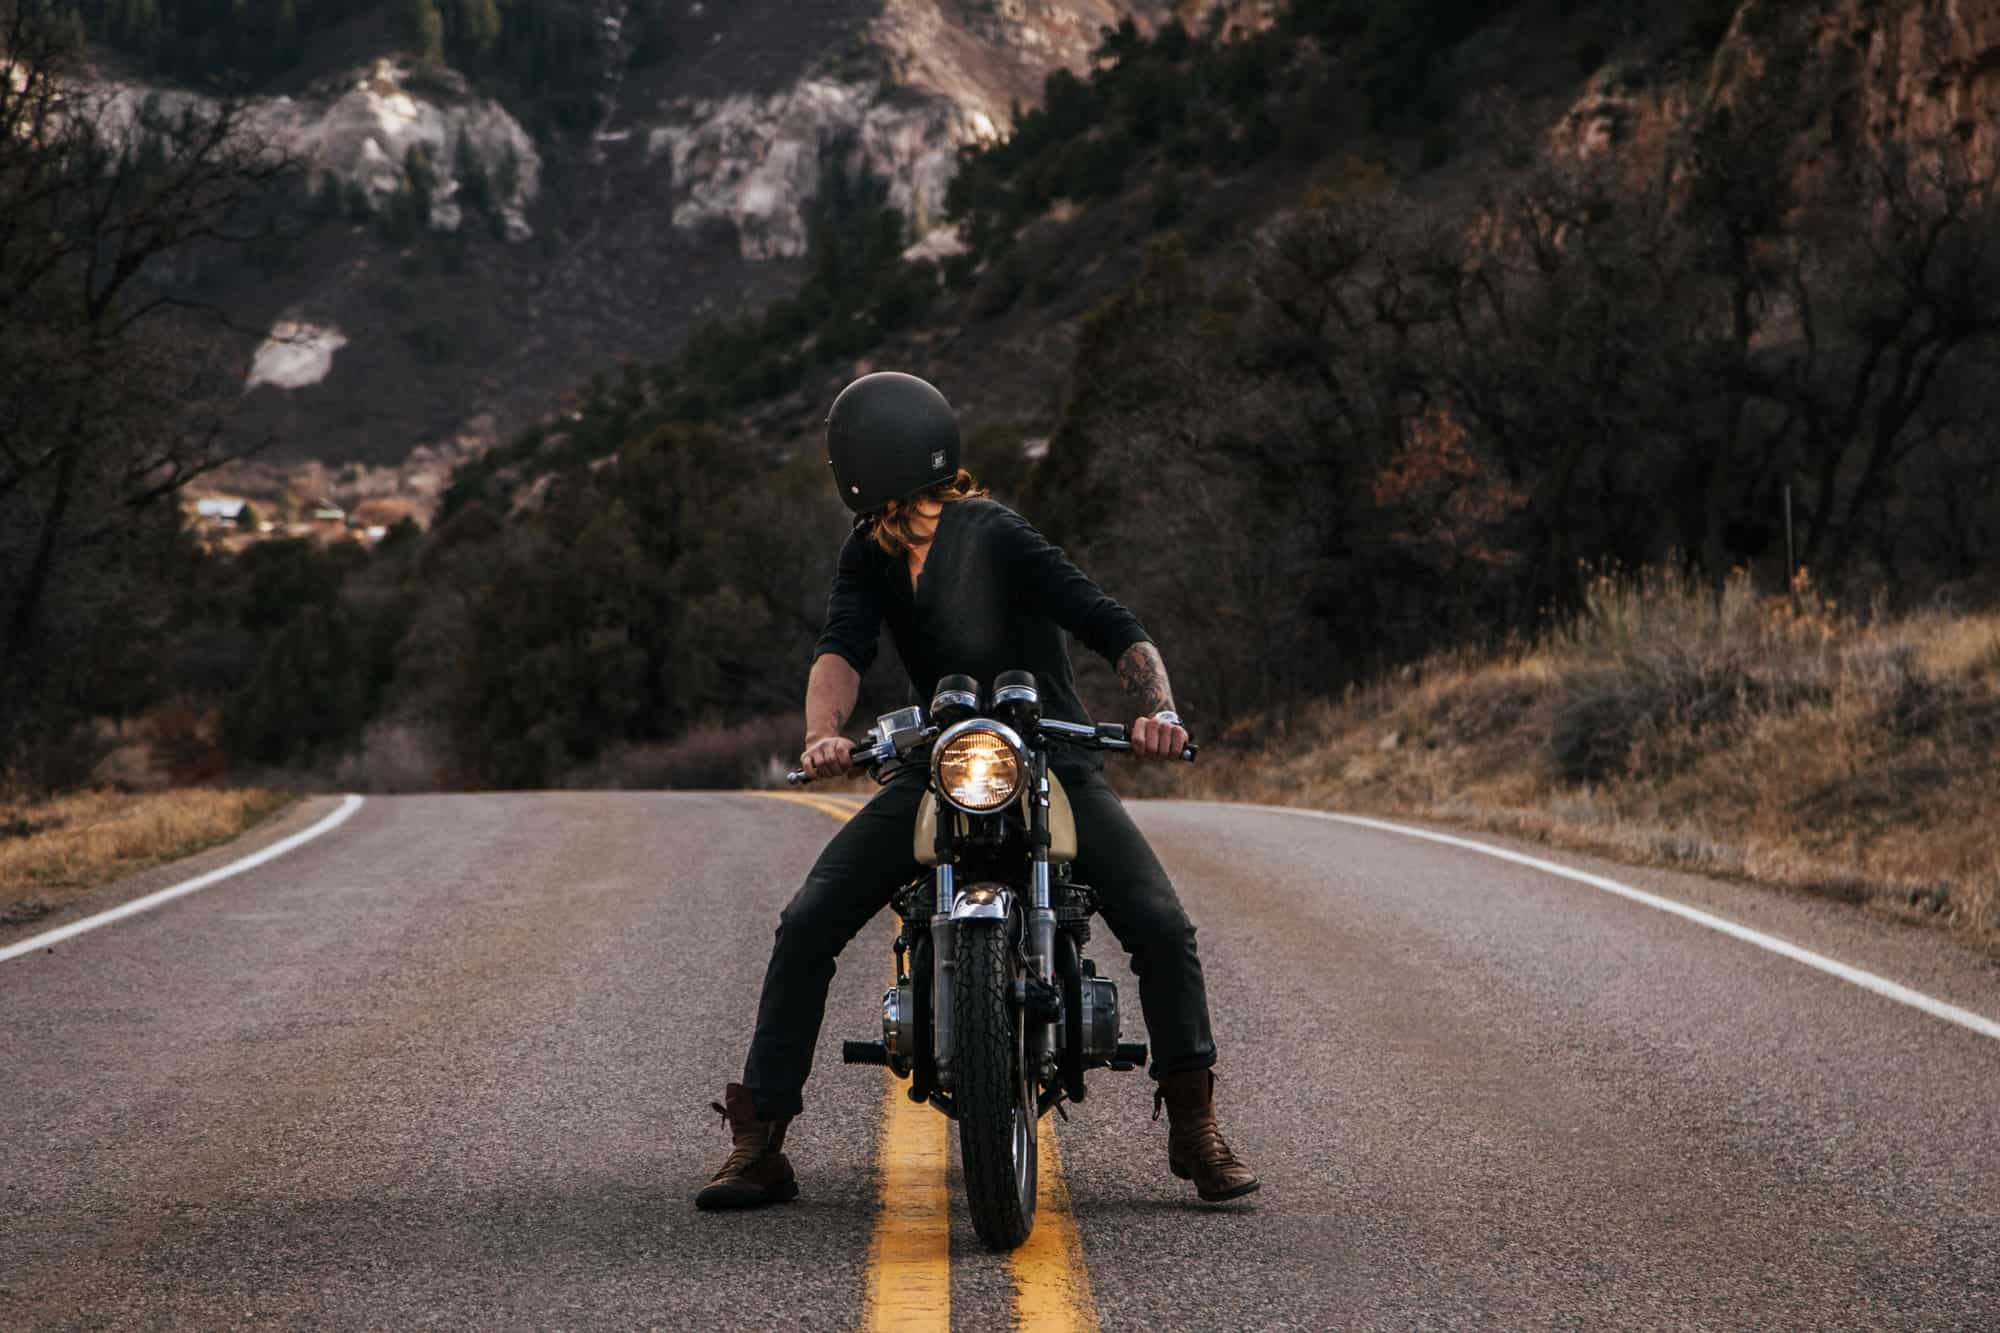 Leadership lessons learnt from riding a motorcycle